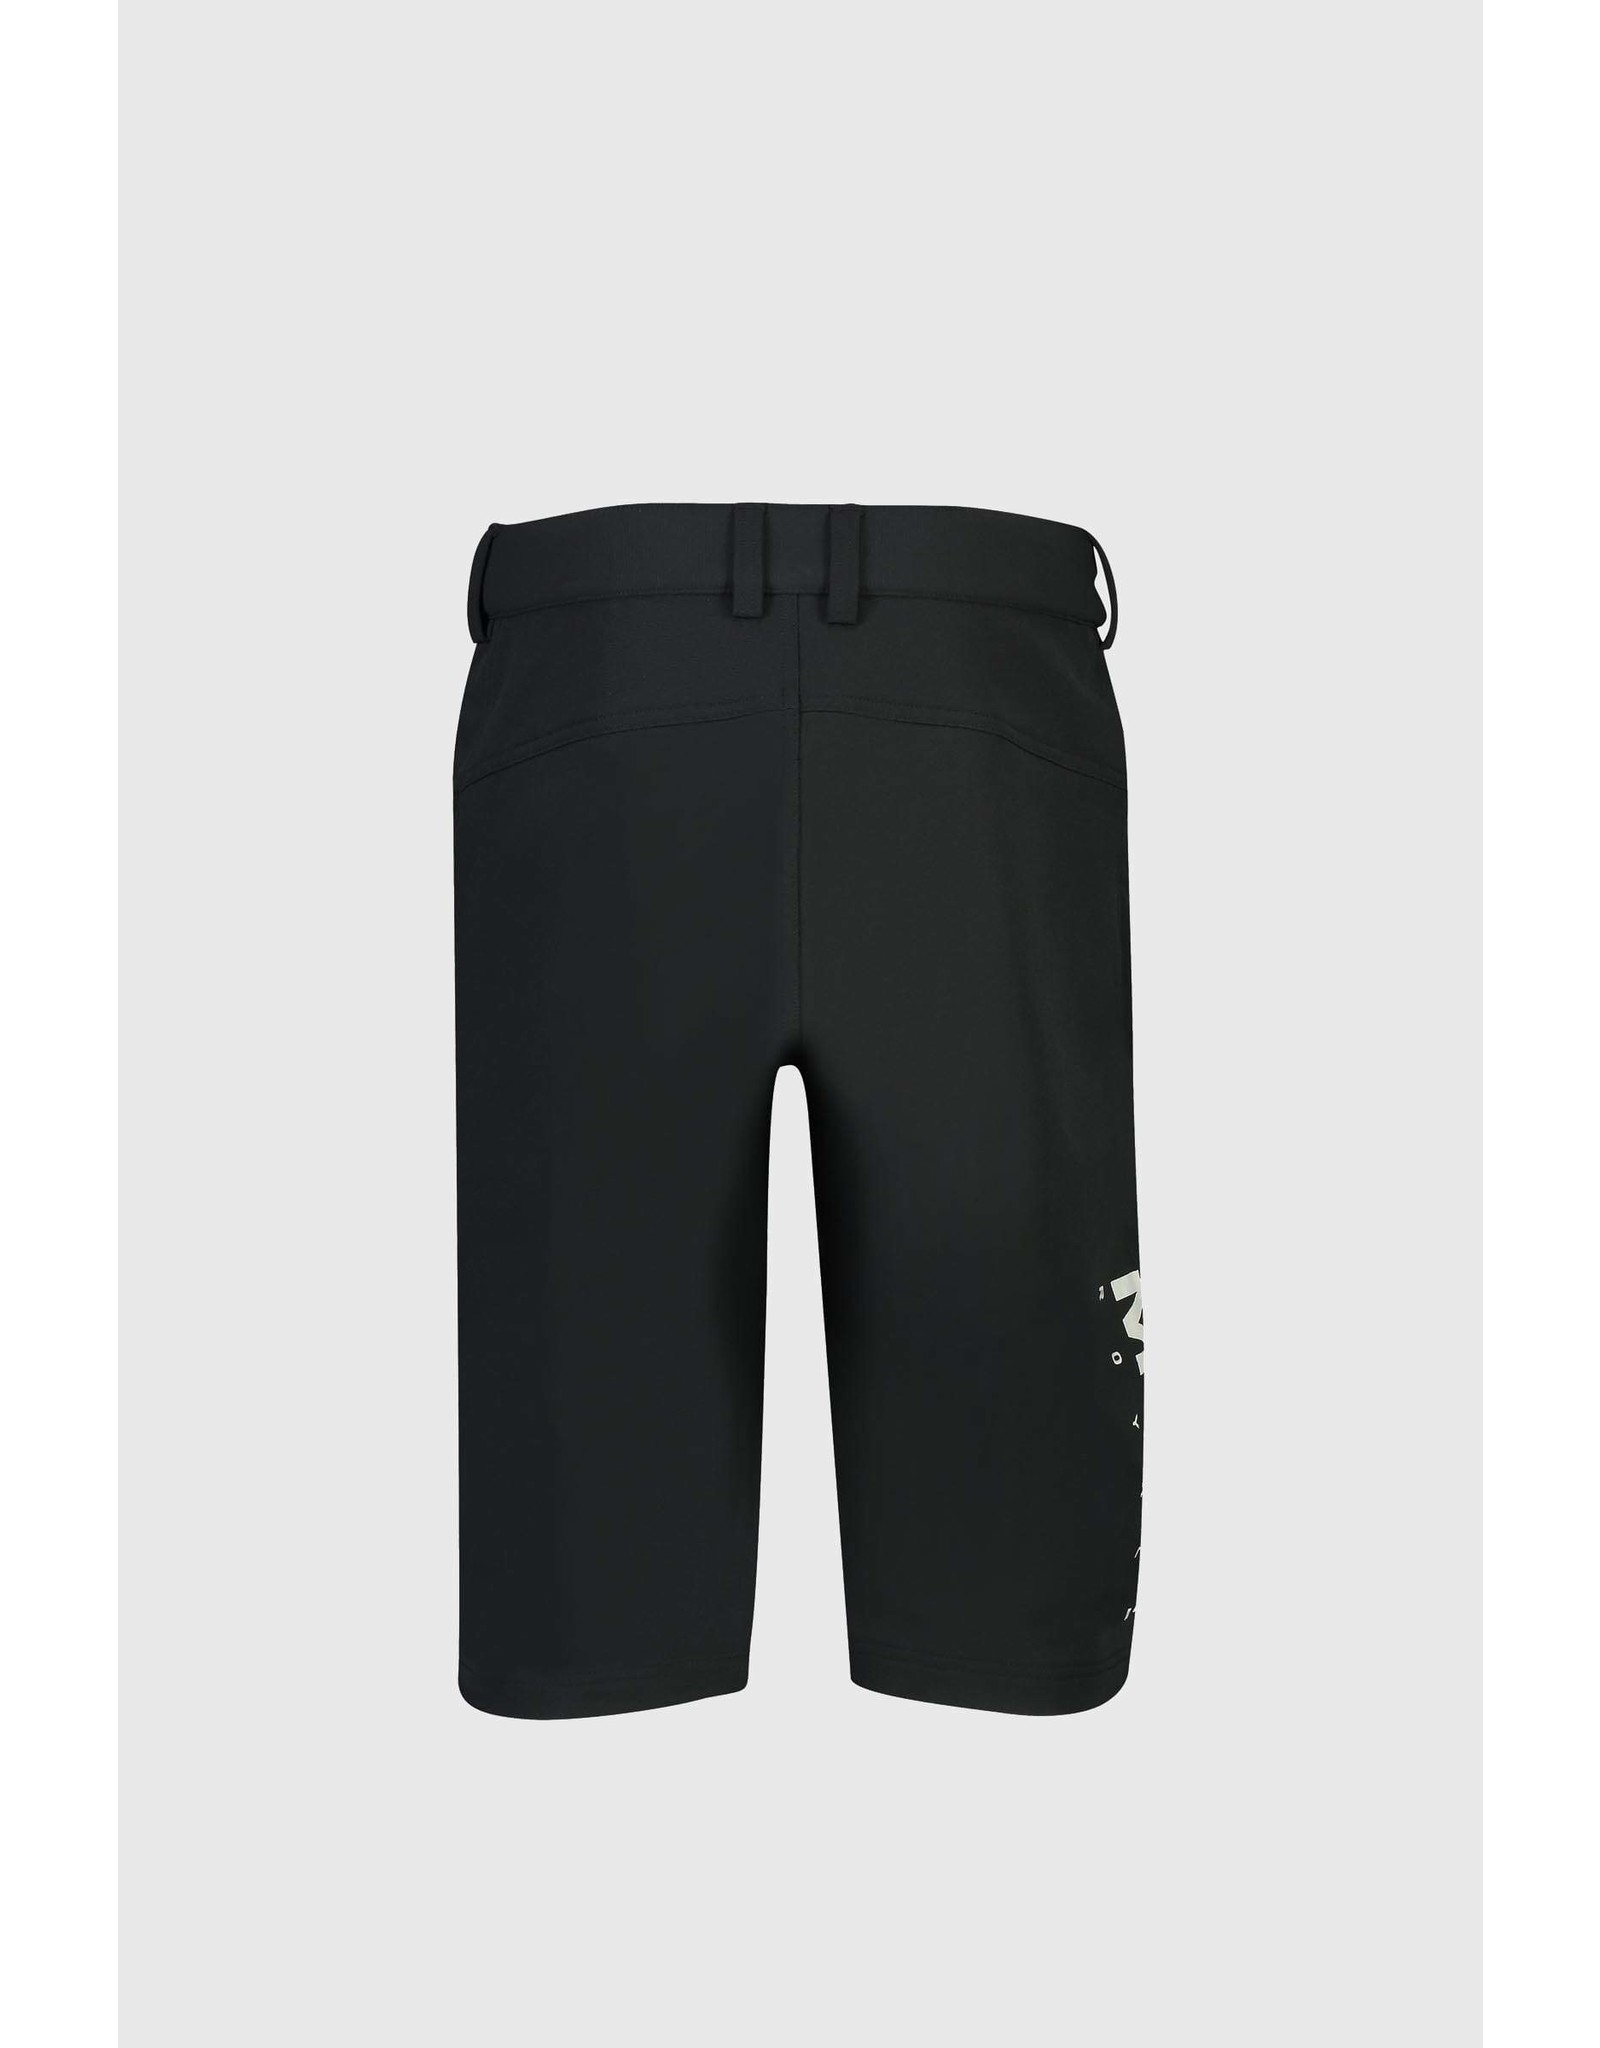 Mons Royale Mons Royale Momentum 2.0 Short Mens Black